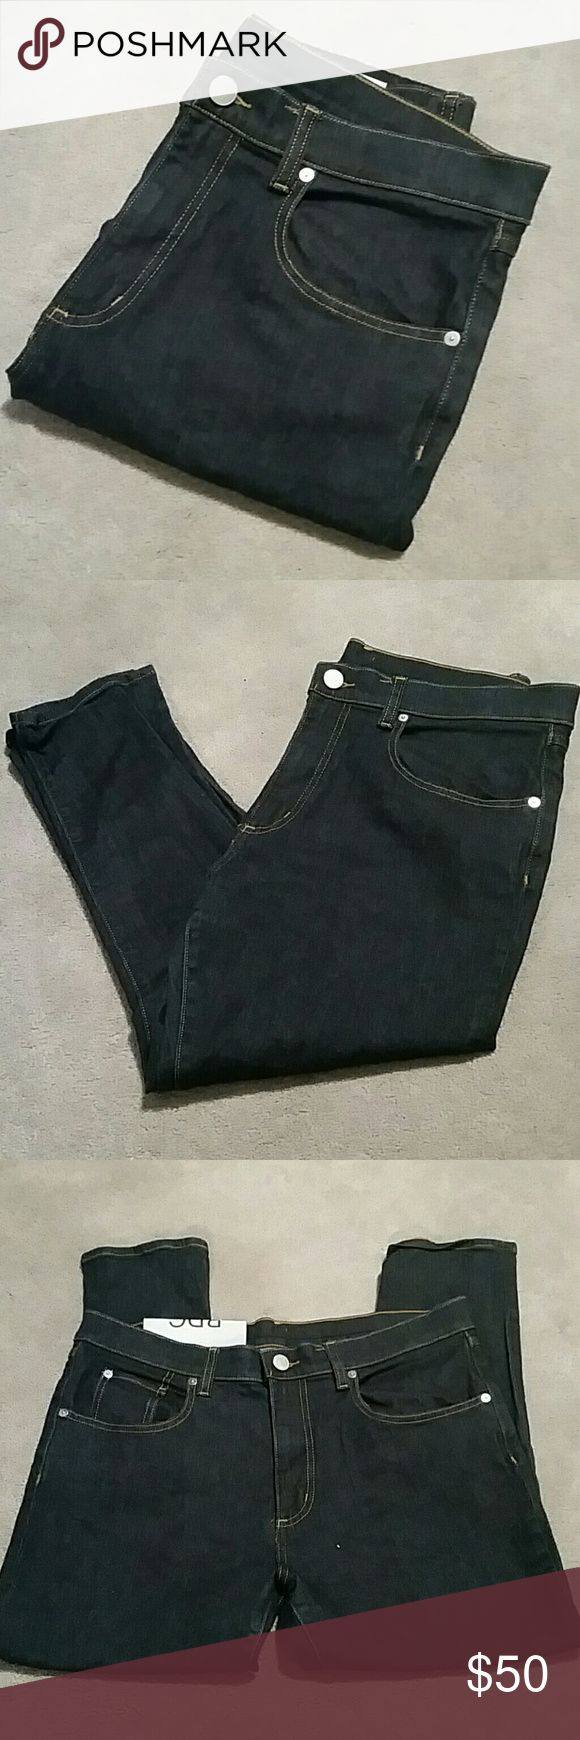 "NWT BDG Drainpipe High Rise Ankle Skinnies- 31W Brand new, with some tags, never worn, dark rinse blue jeans Smoke and pet free home  31W Drainpipe High Rise Cropped Skinnies  98% cotton /2% spandex  Approx Measurements :  Waist 17"" Rise 11"" Inseam 24"" BDG Jeans Ankle & Cropped"